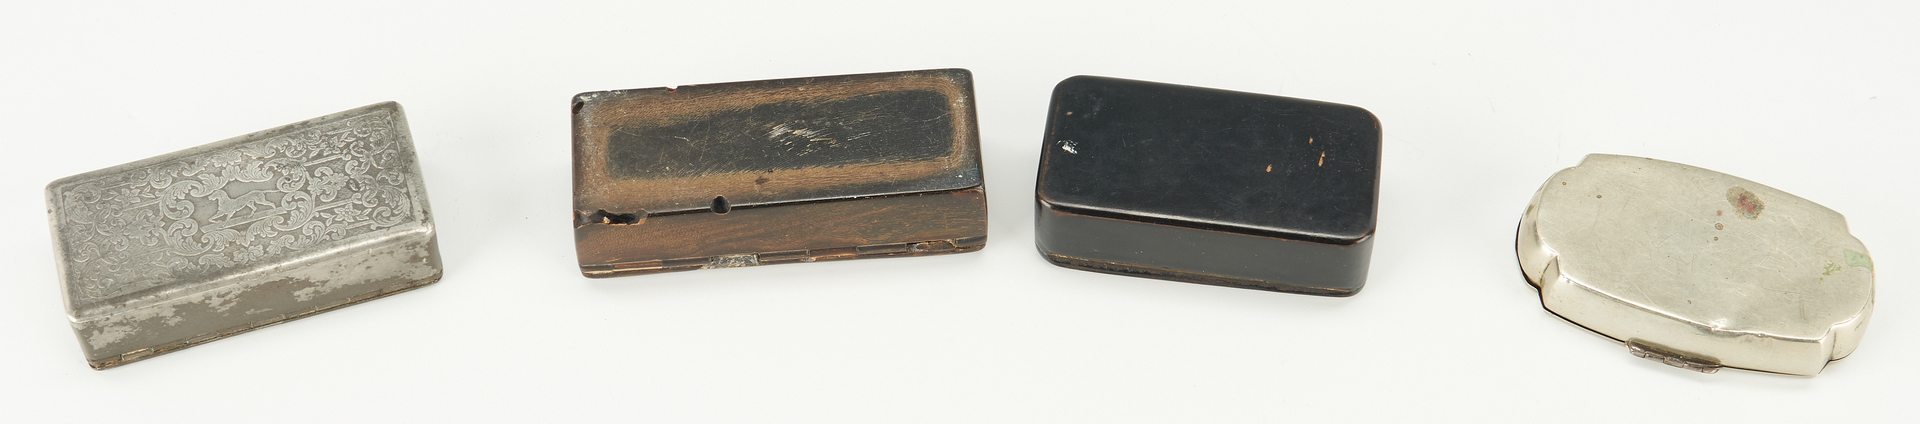 Lot 241: 10 Snuff, Tobacco & Spice Boxes, Various Materials